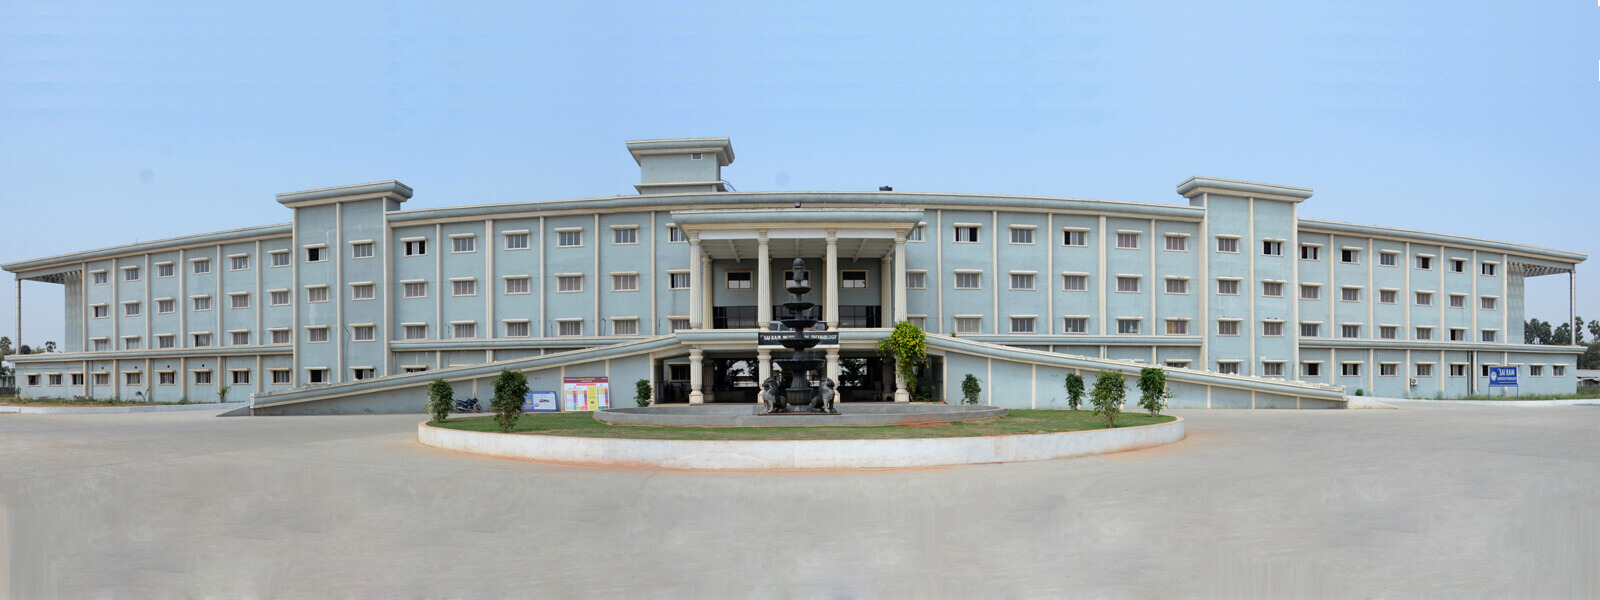 Sri Sai Ram Institute of Technology